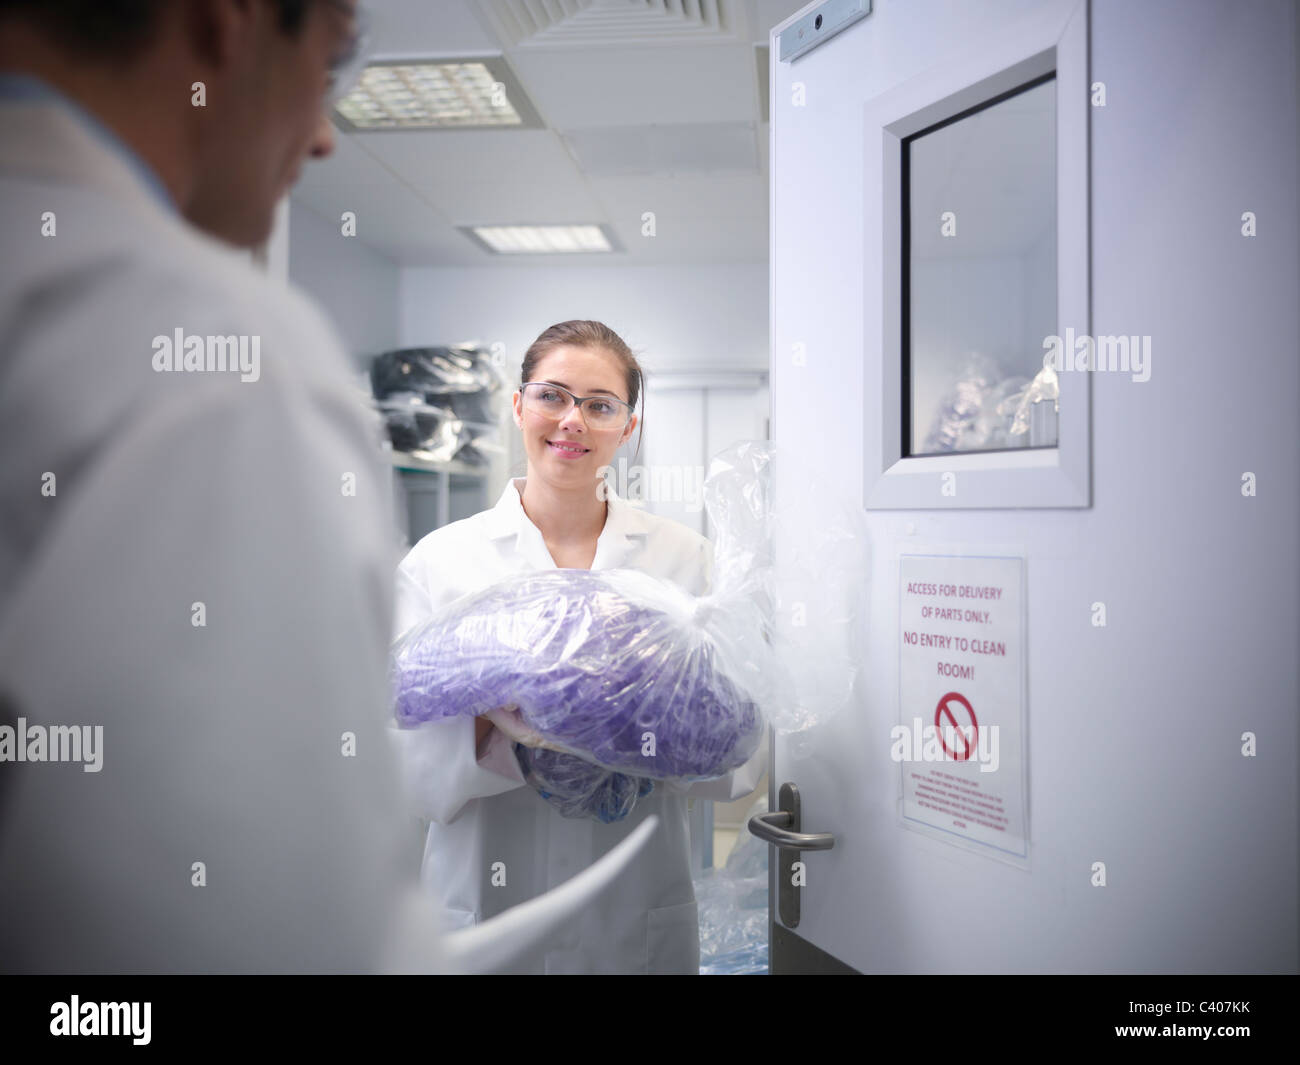 Scientist with product in laboratory - Stock Image